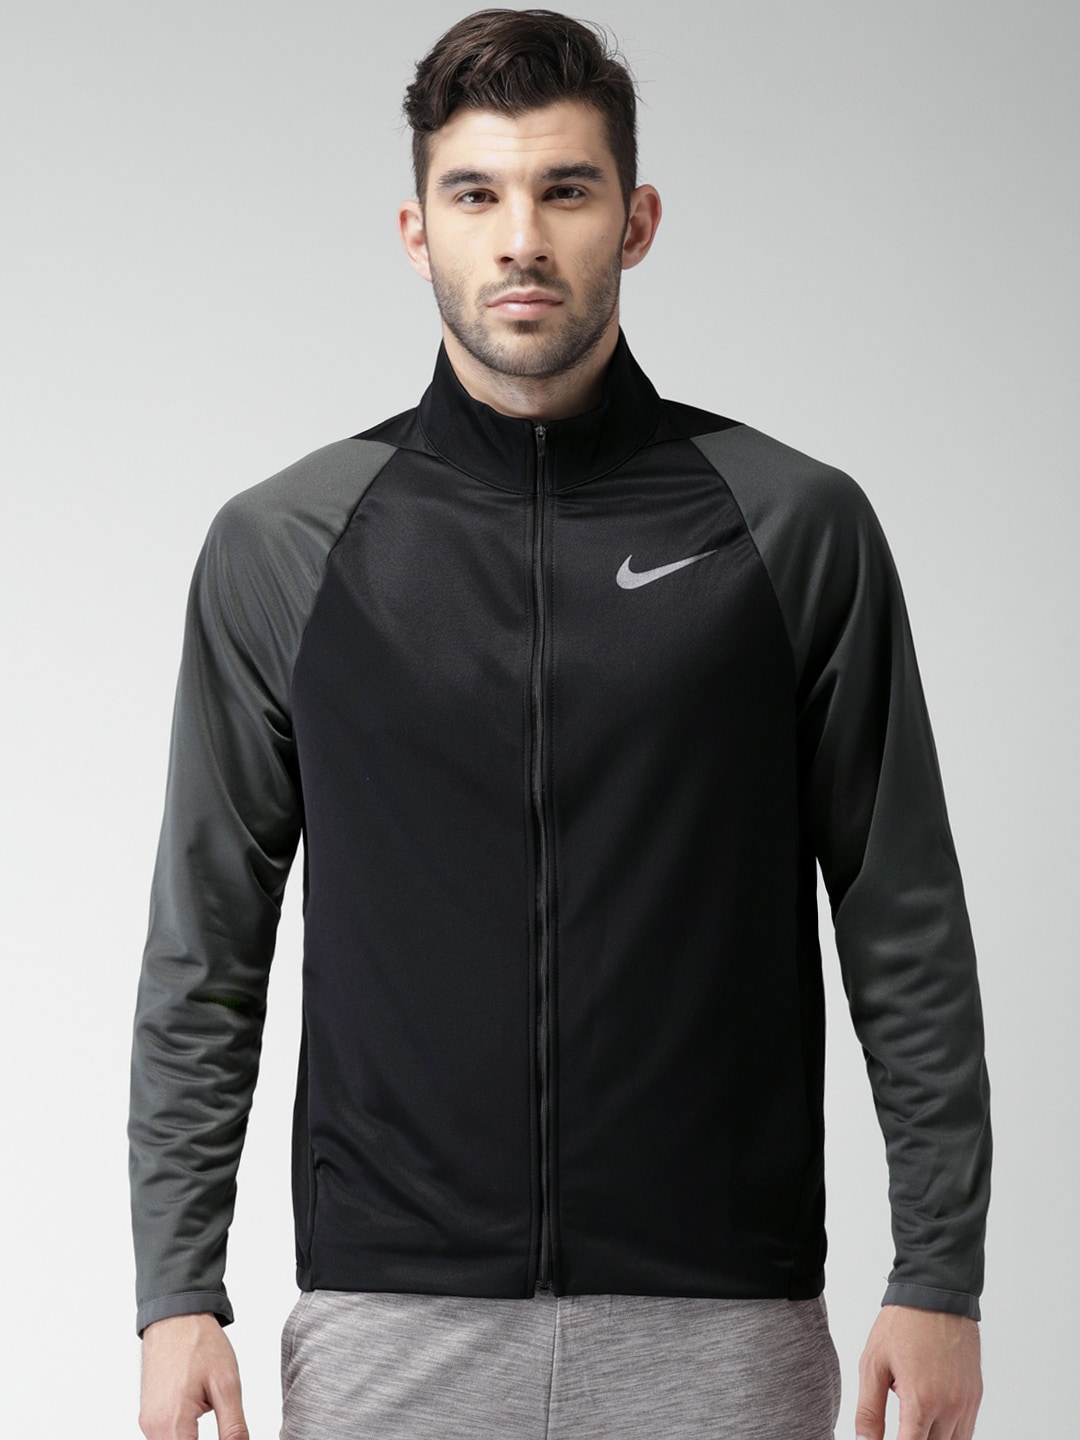 Nike Jackets Bra Rain Jacket - Buy Nike Jackets Bra Rain Jacket online in  India 4a8b6bfed